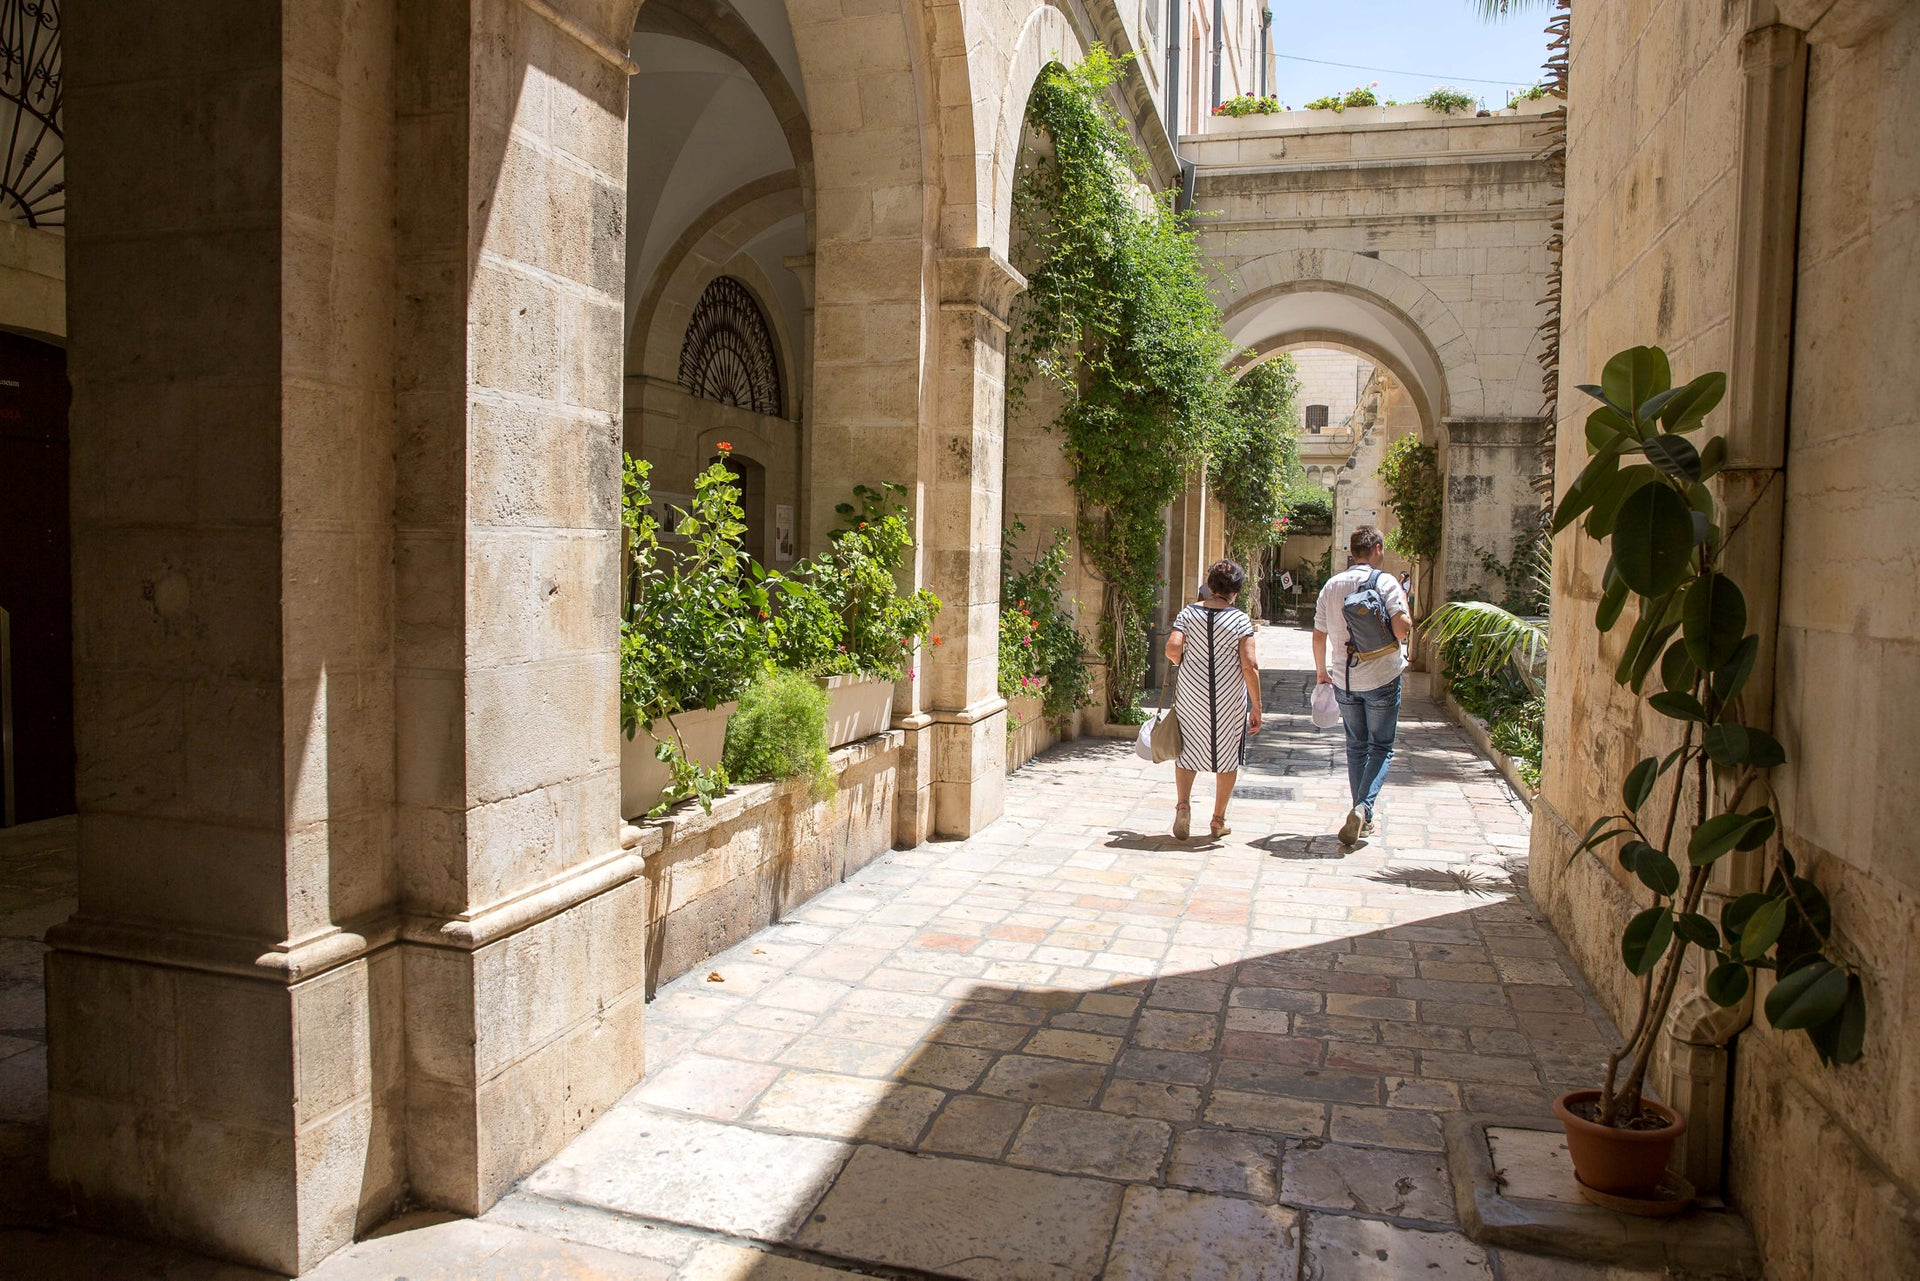 Visitors are walking inside the Monastery of the Flagellation.